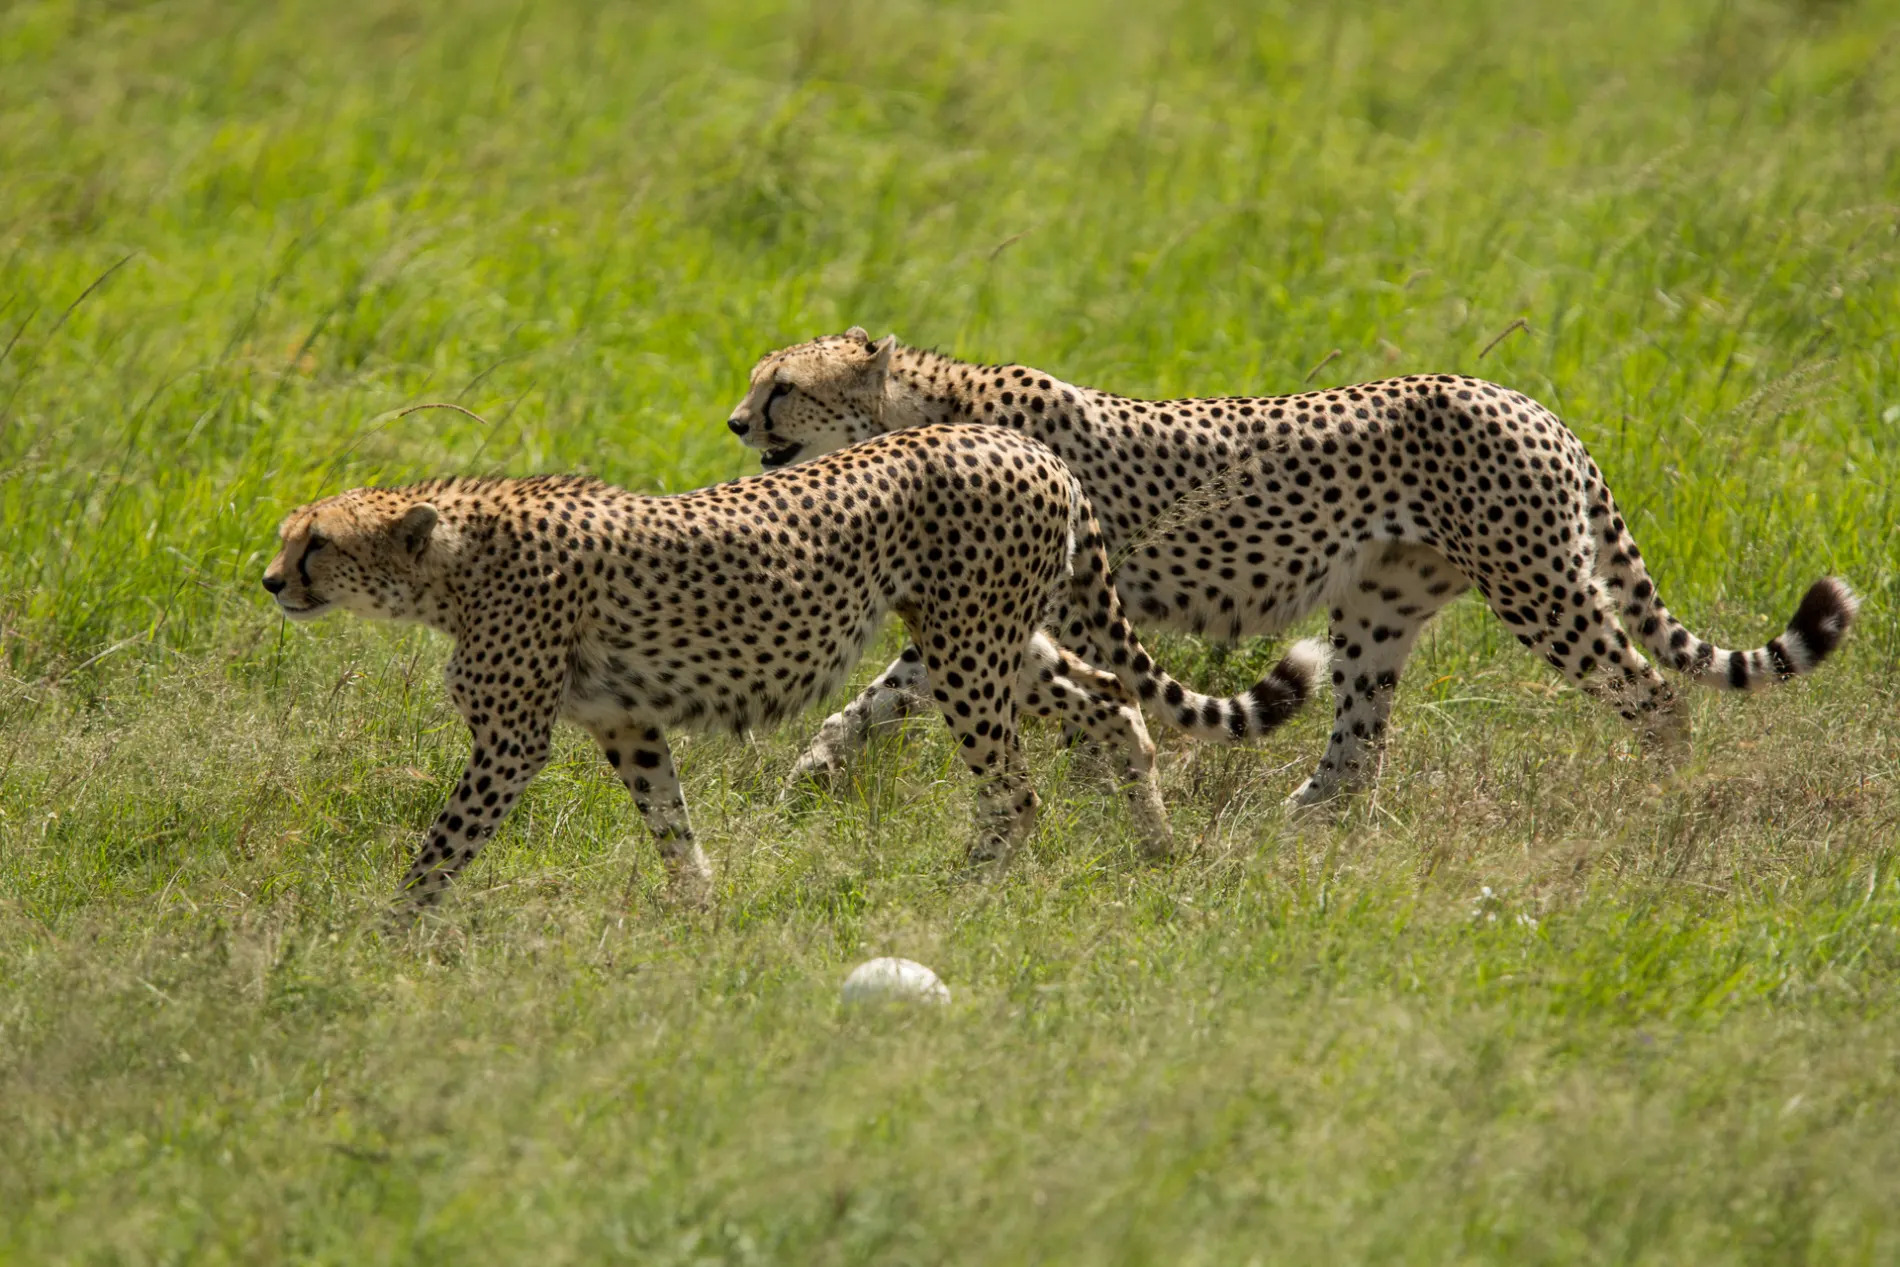 Cheetahs walking